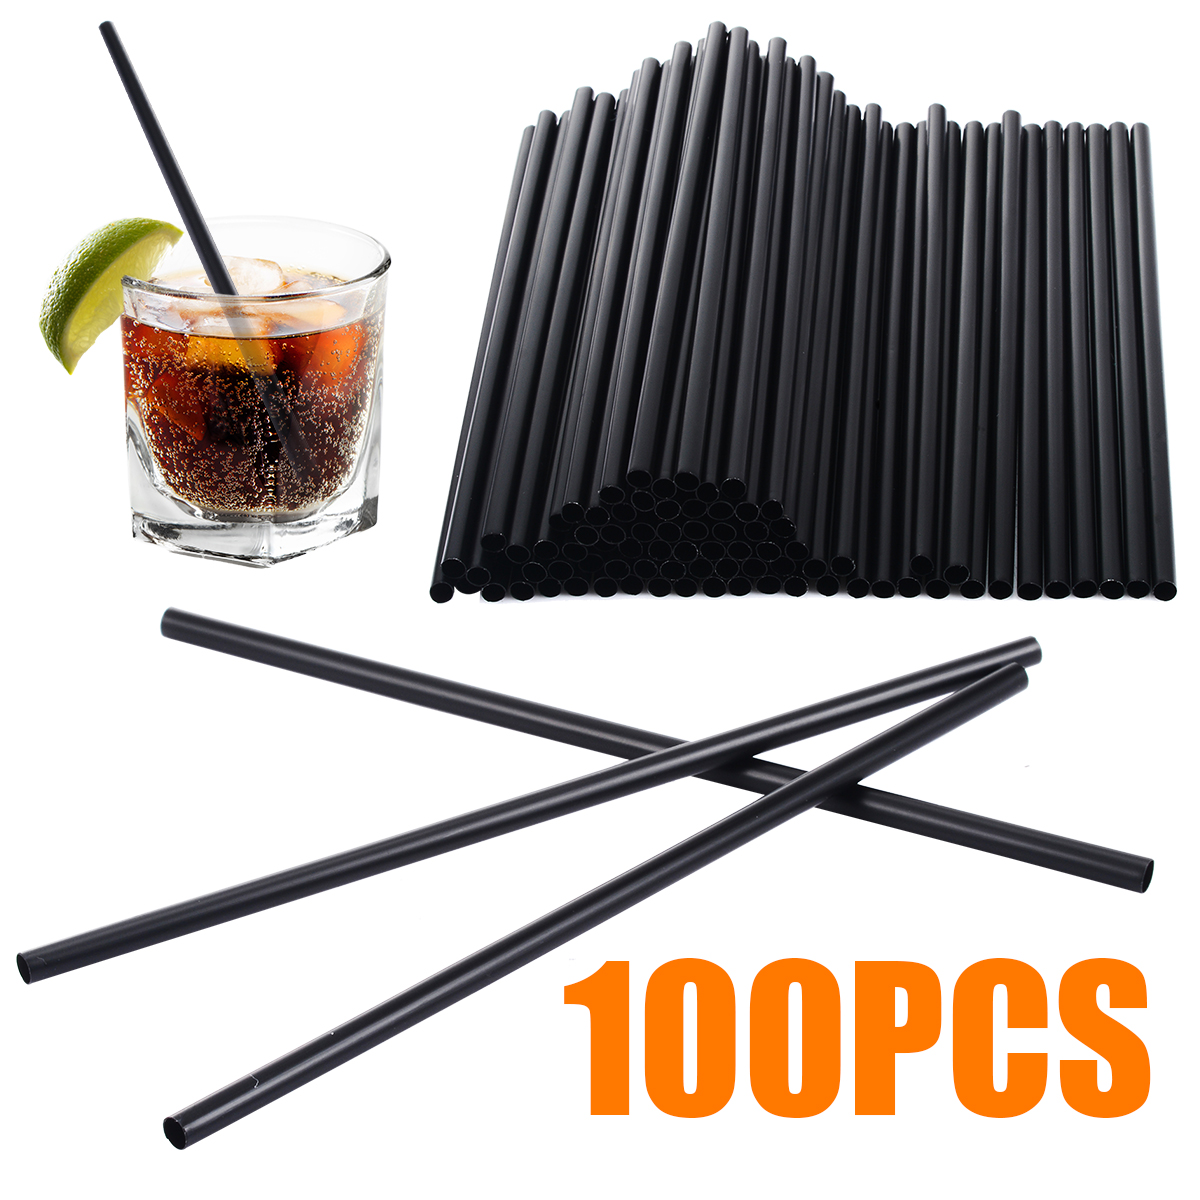 100pcs/set Disposable Drinking Straws Mini Cocktail Straws Black Plastic Party Straws For Wedding Event Party Supplies 130mm